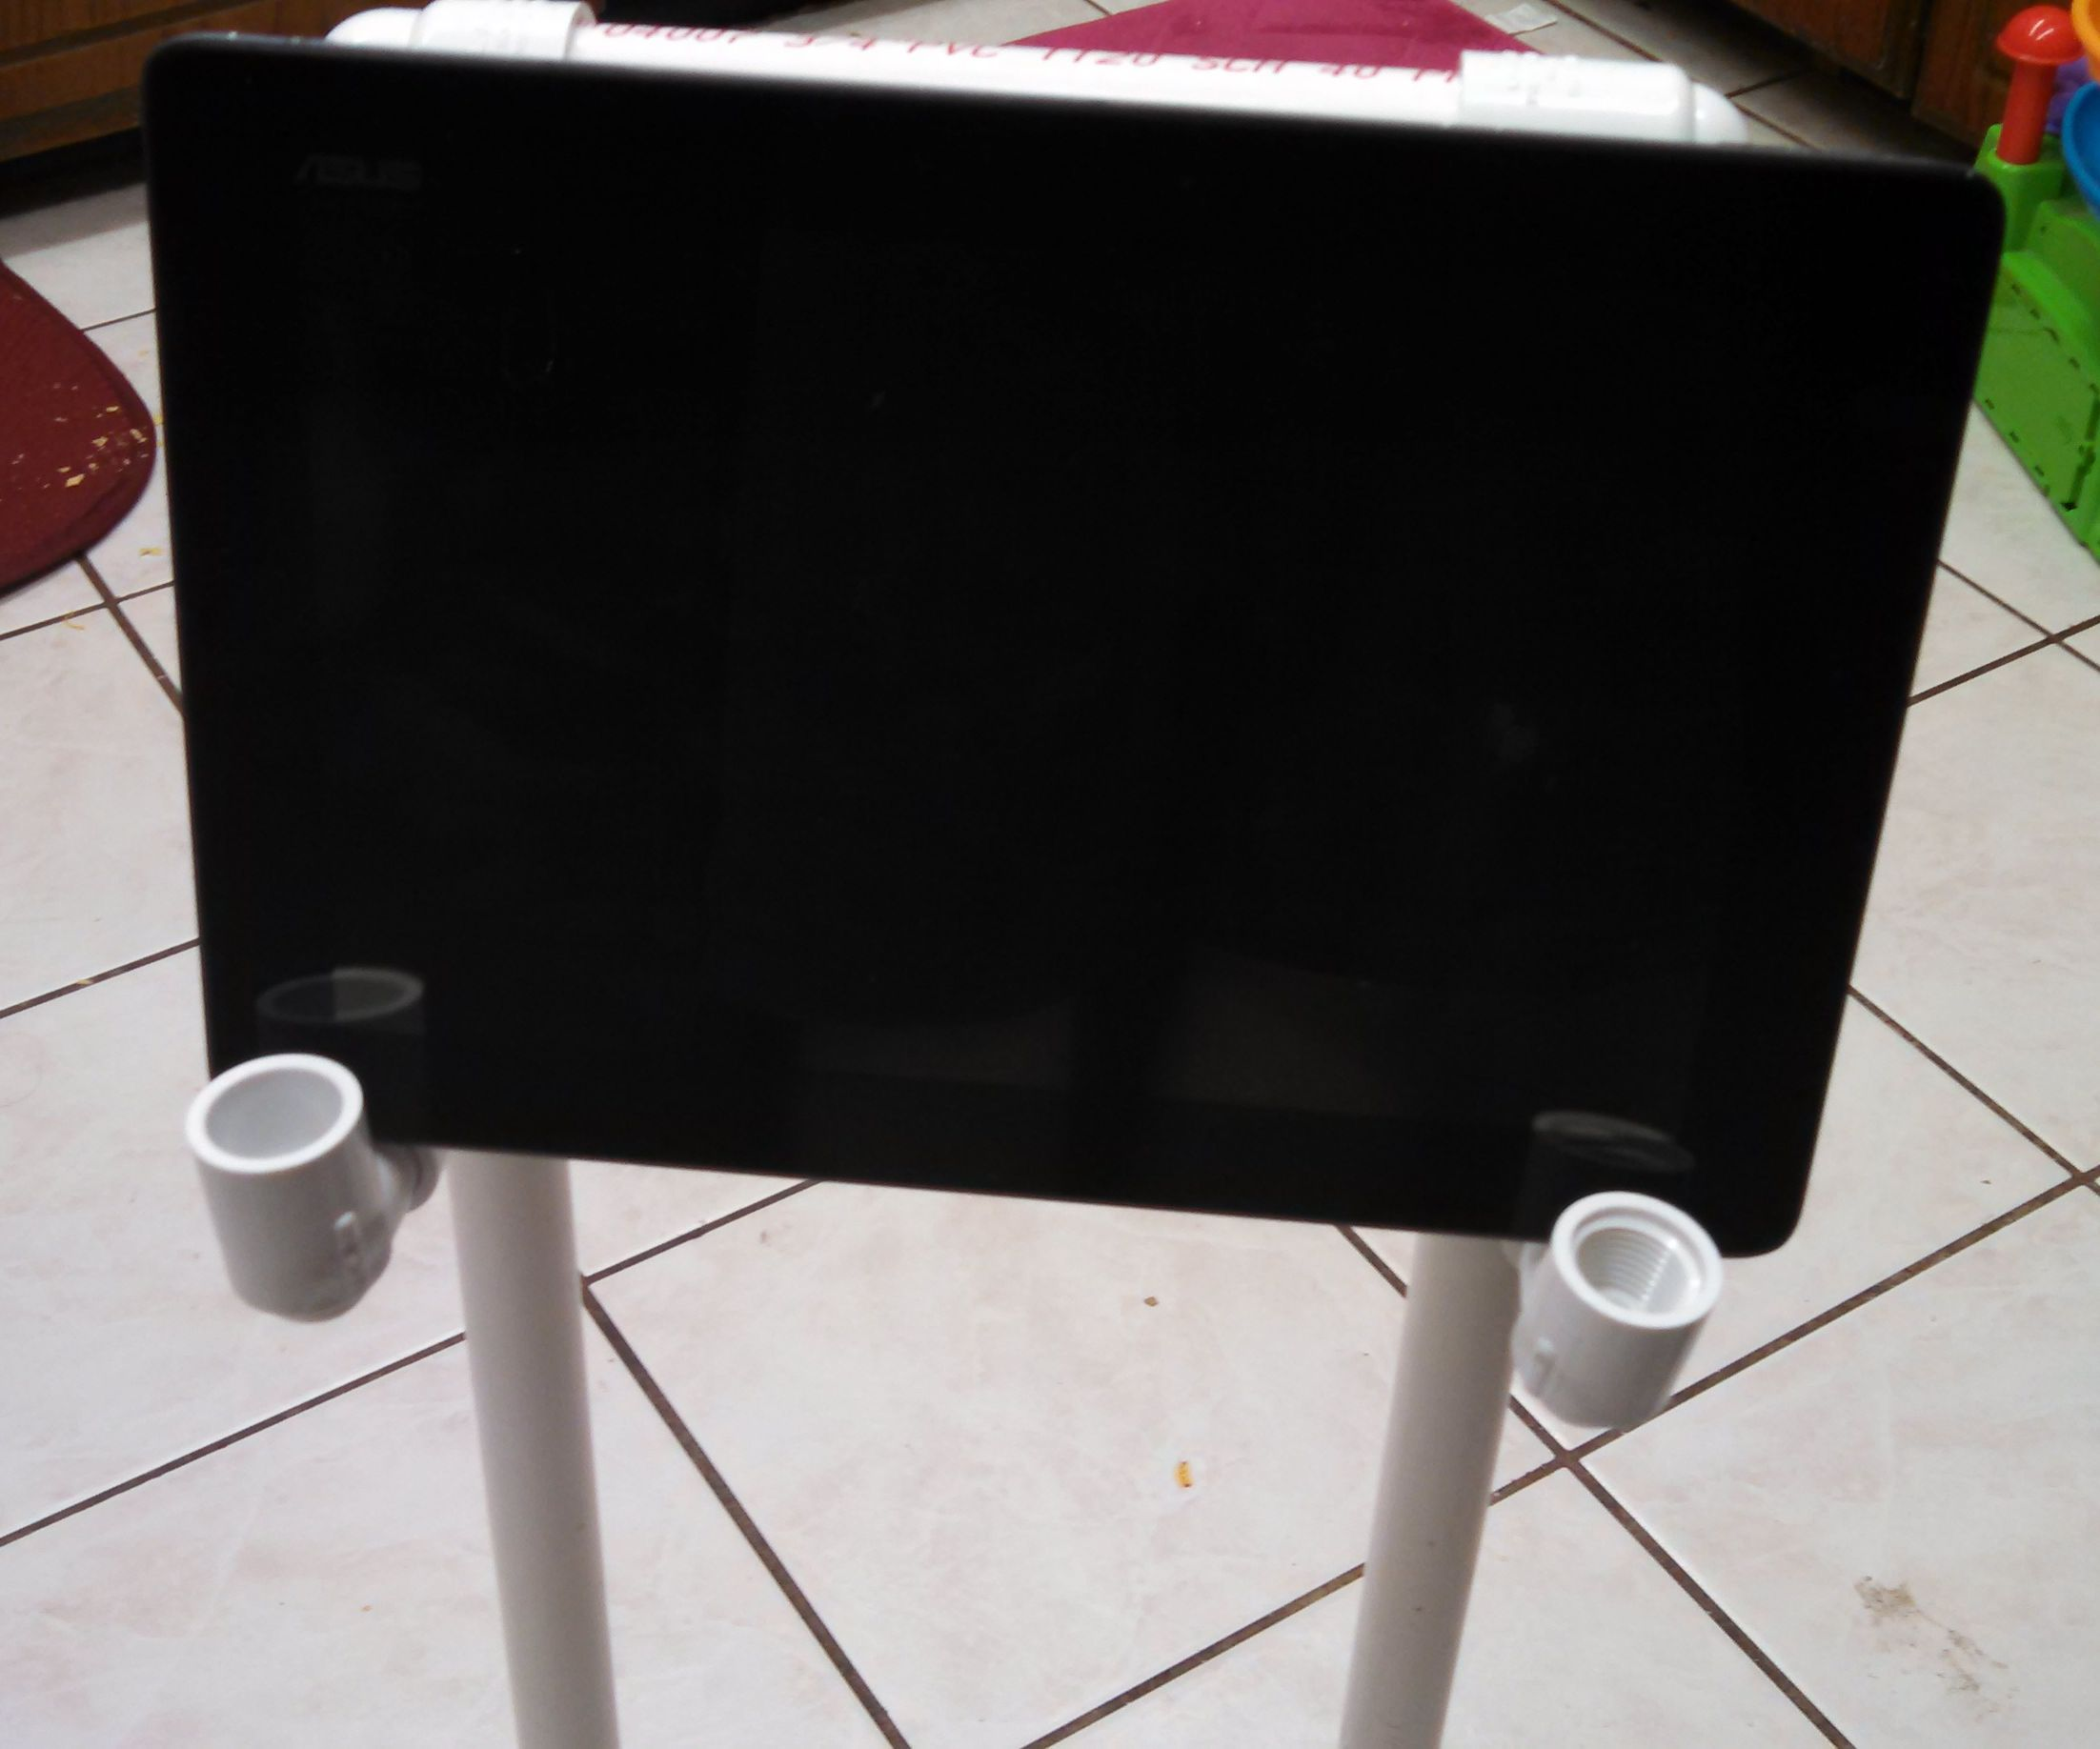 PVC Backseat Tablet Stand